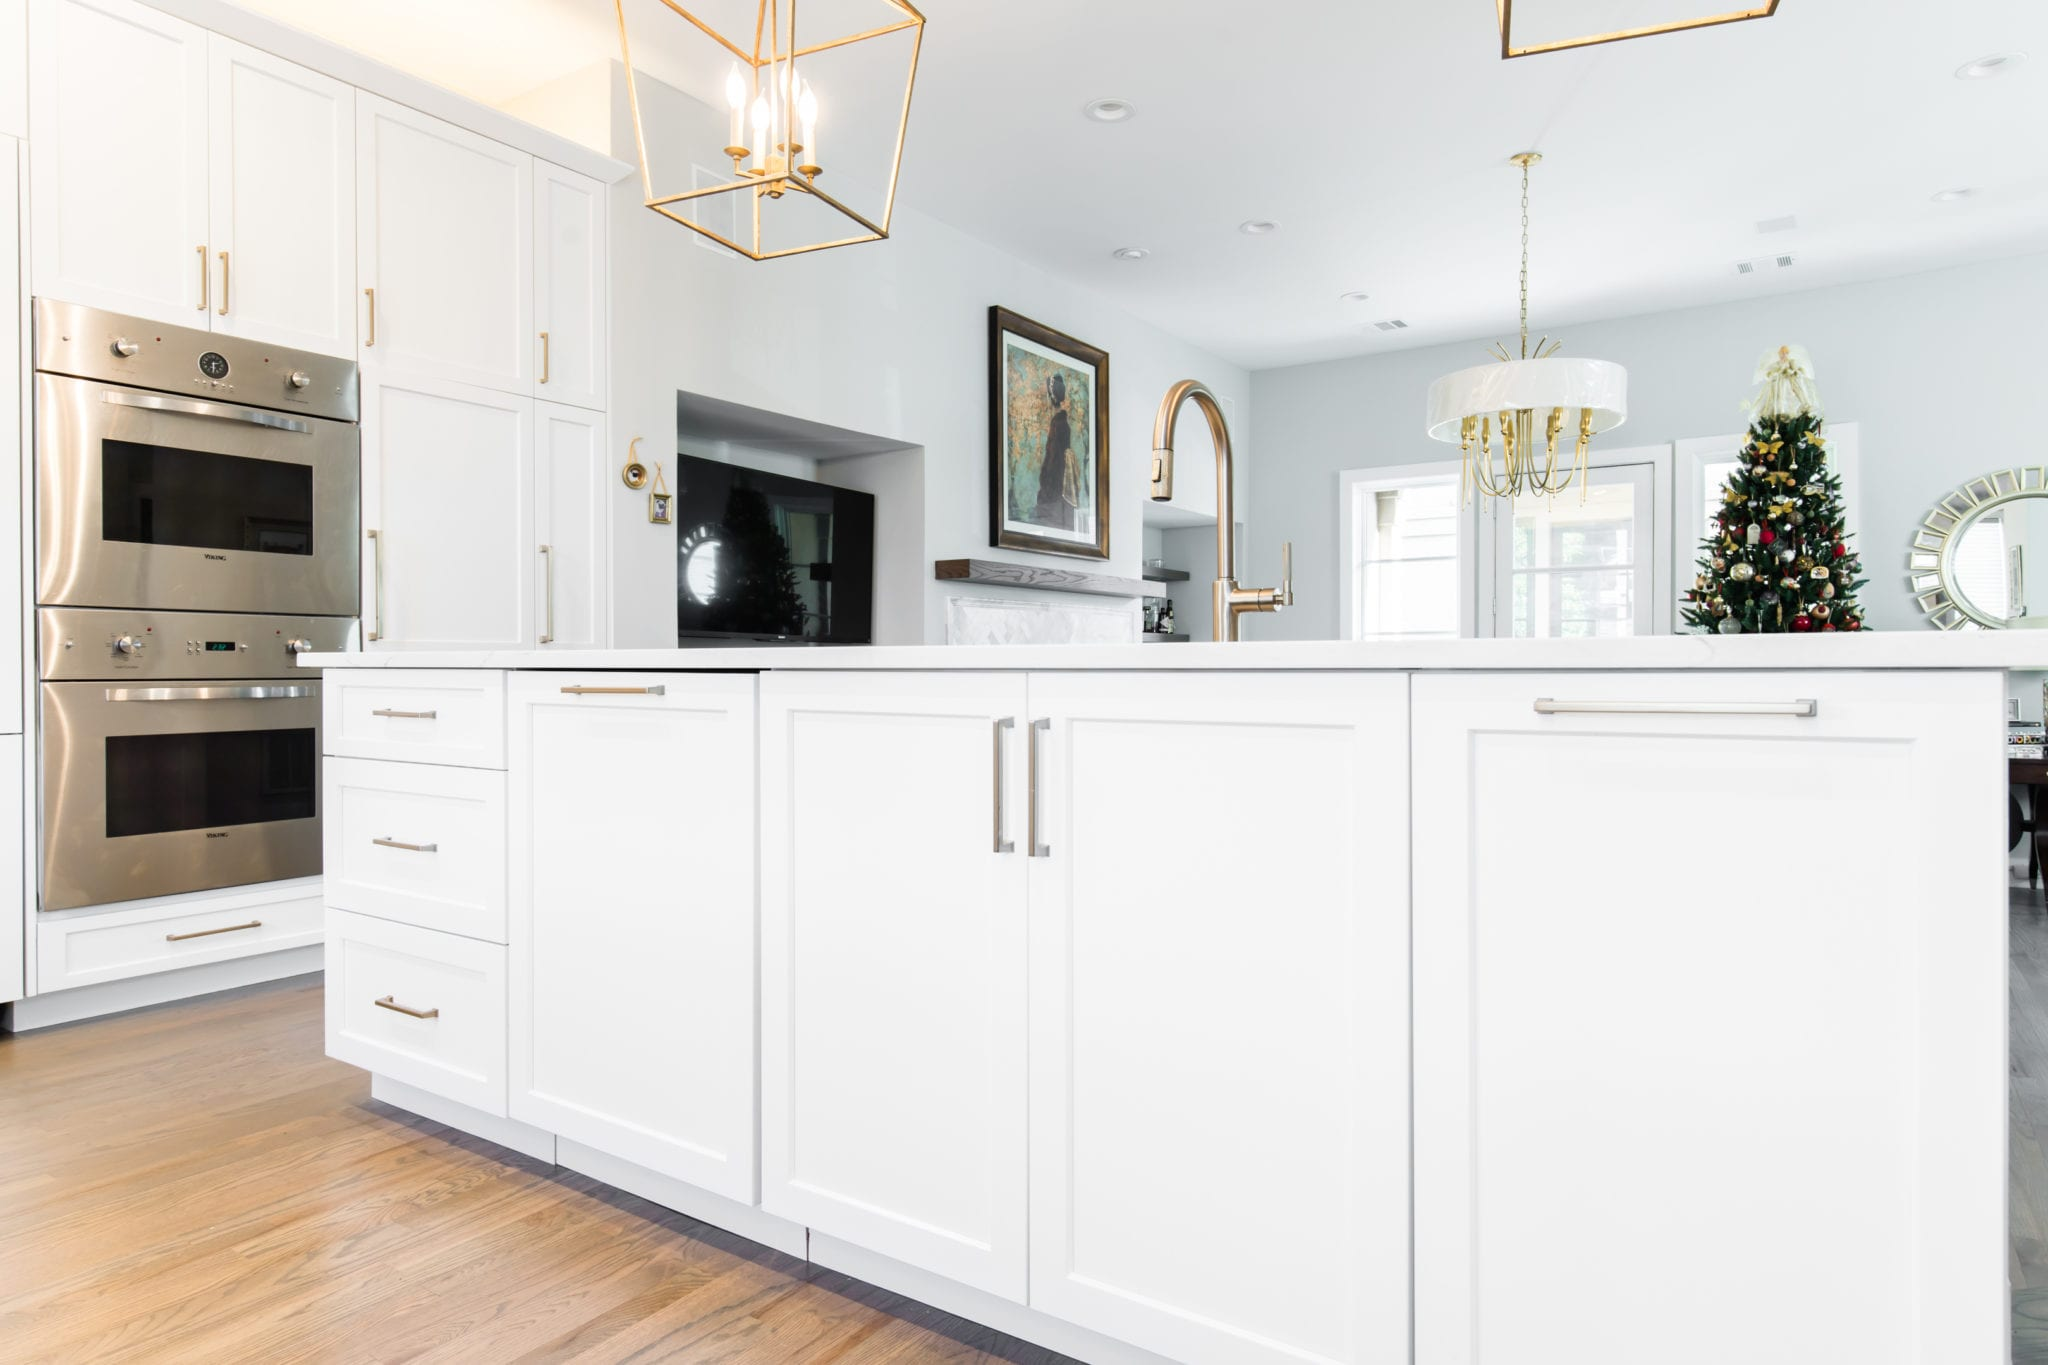 Custom-Islnad-Cabinets-After-Kitchen-Remodel-Turtle-Creek-Texas-Townhome-Condo